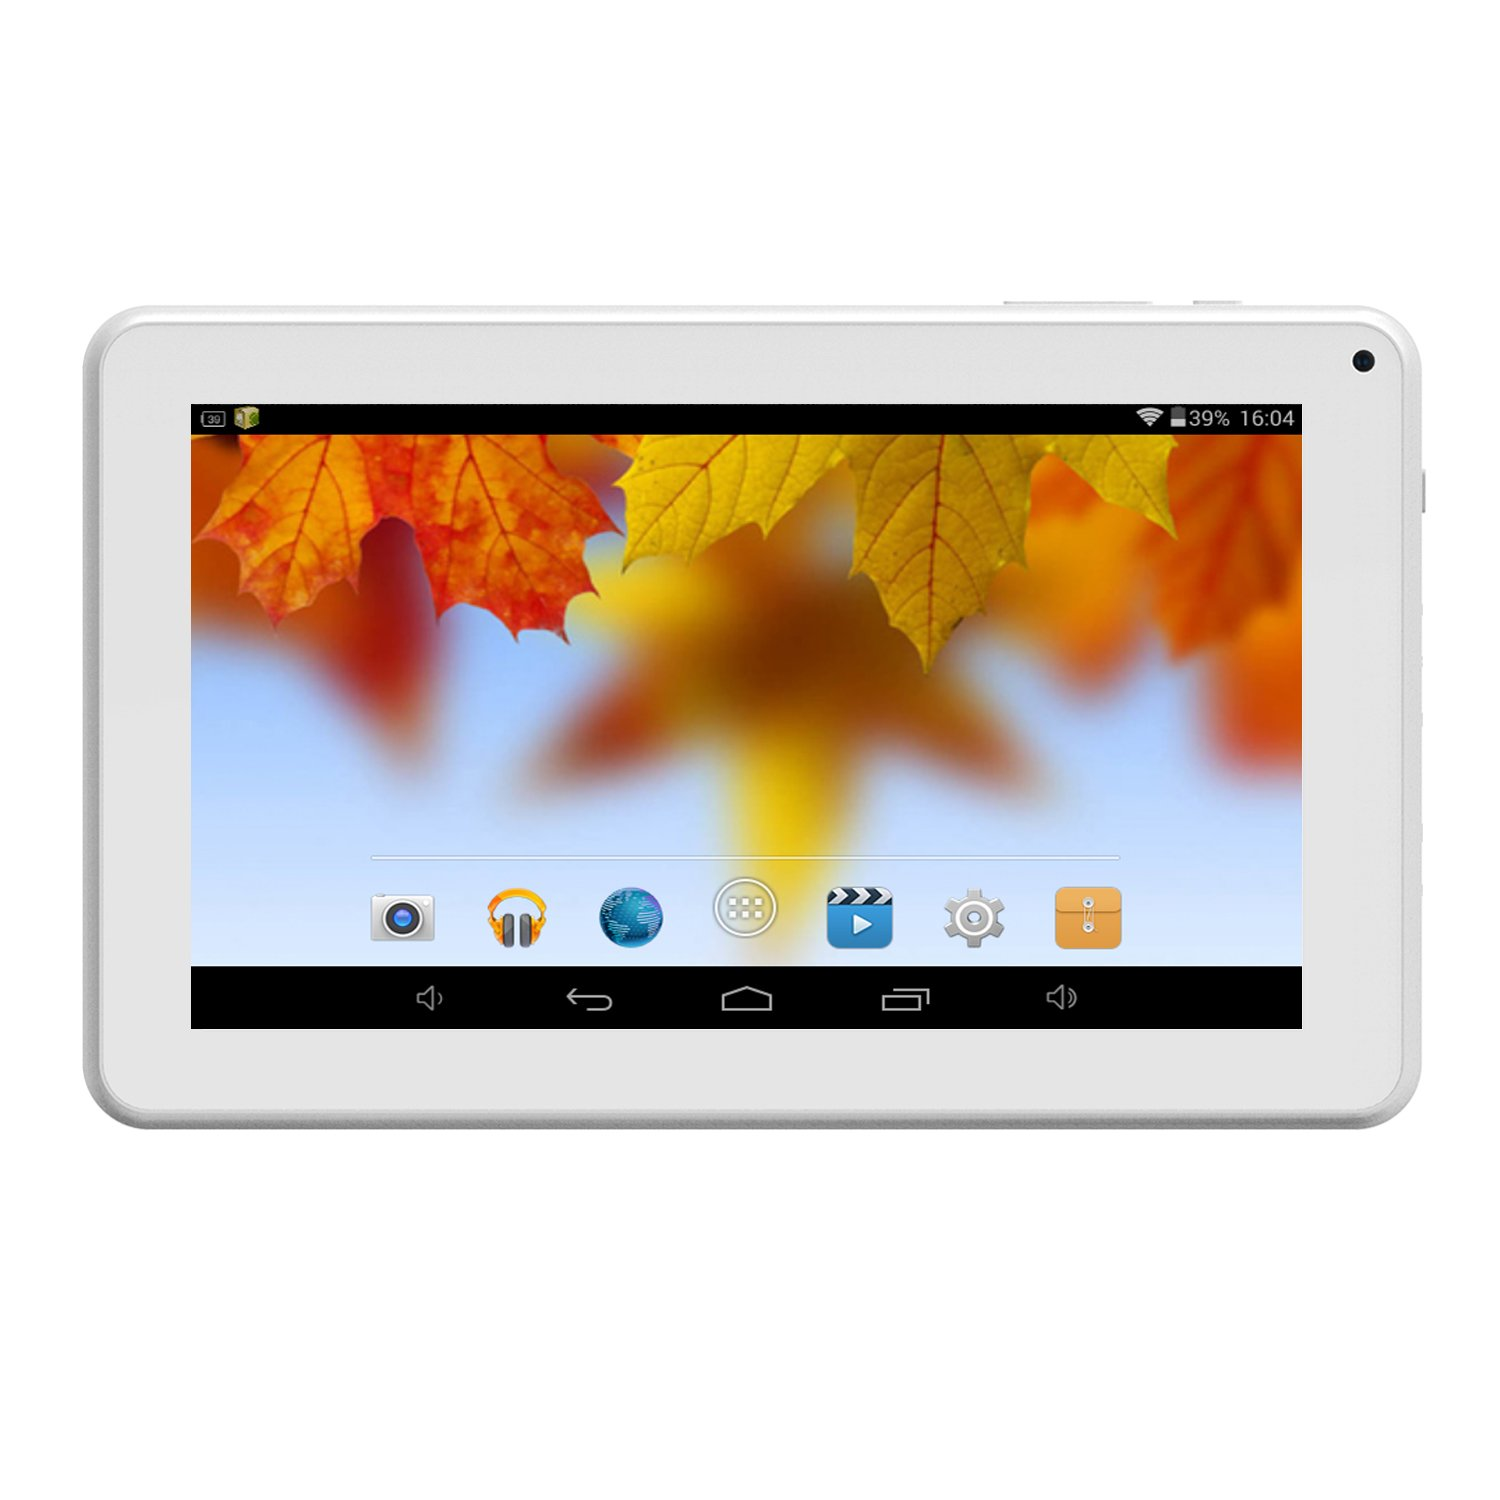 Android Tablet 9 inch WiFi Blutooth Pad with Dual Camera 1GB RAM 8GB ROM Expandable 64GB Storage Tablet PC,White